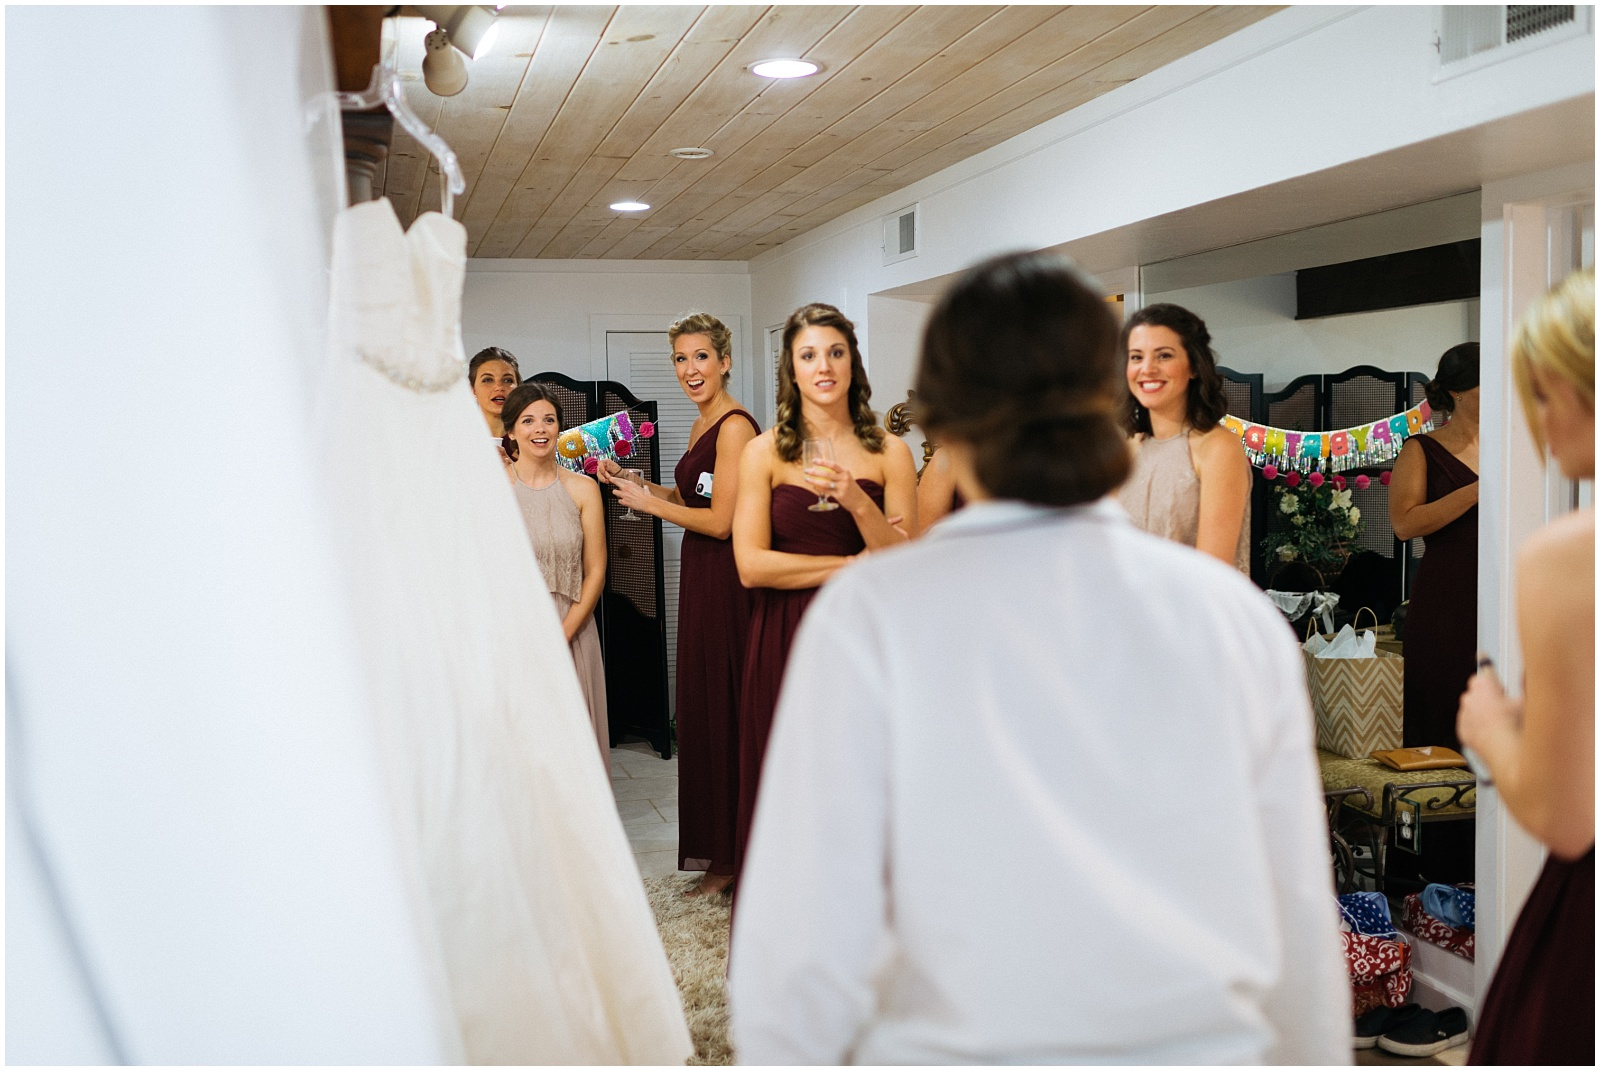 Looking at the bride